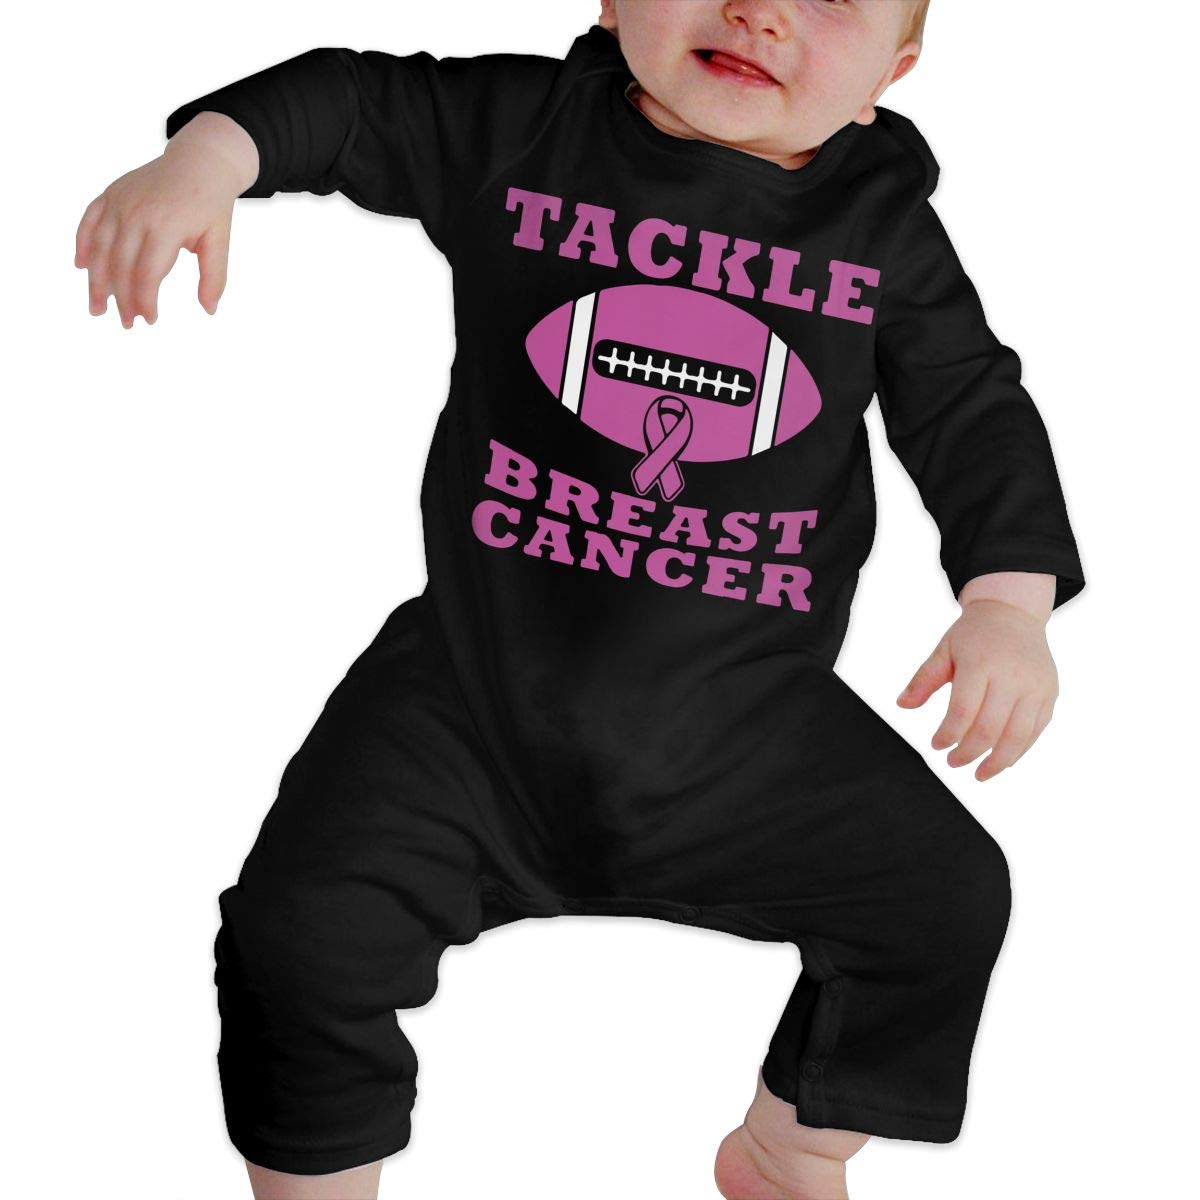 U99oi-9 Long Sleeve Cotton Rompers for Baby Girls Boys Soft Tackle Breast Cancer Jumpsuit